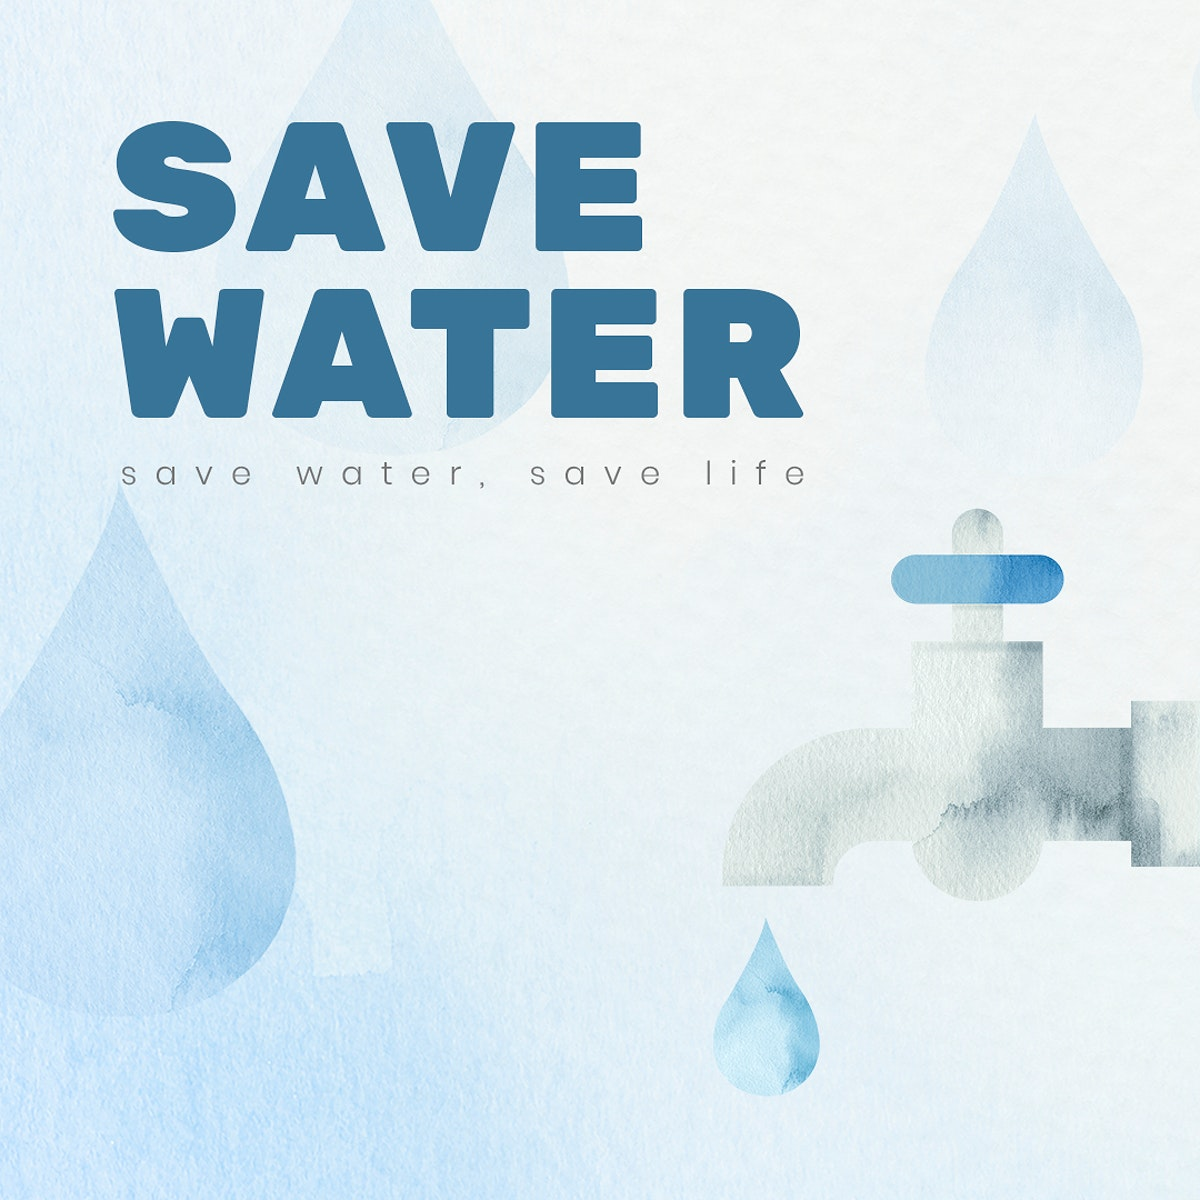 Editable environment template psd for social media post with save water text in watercolor